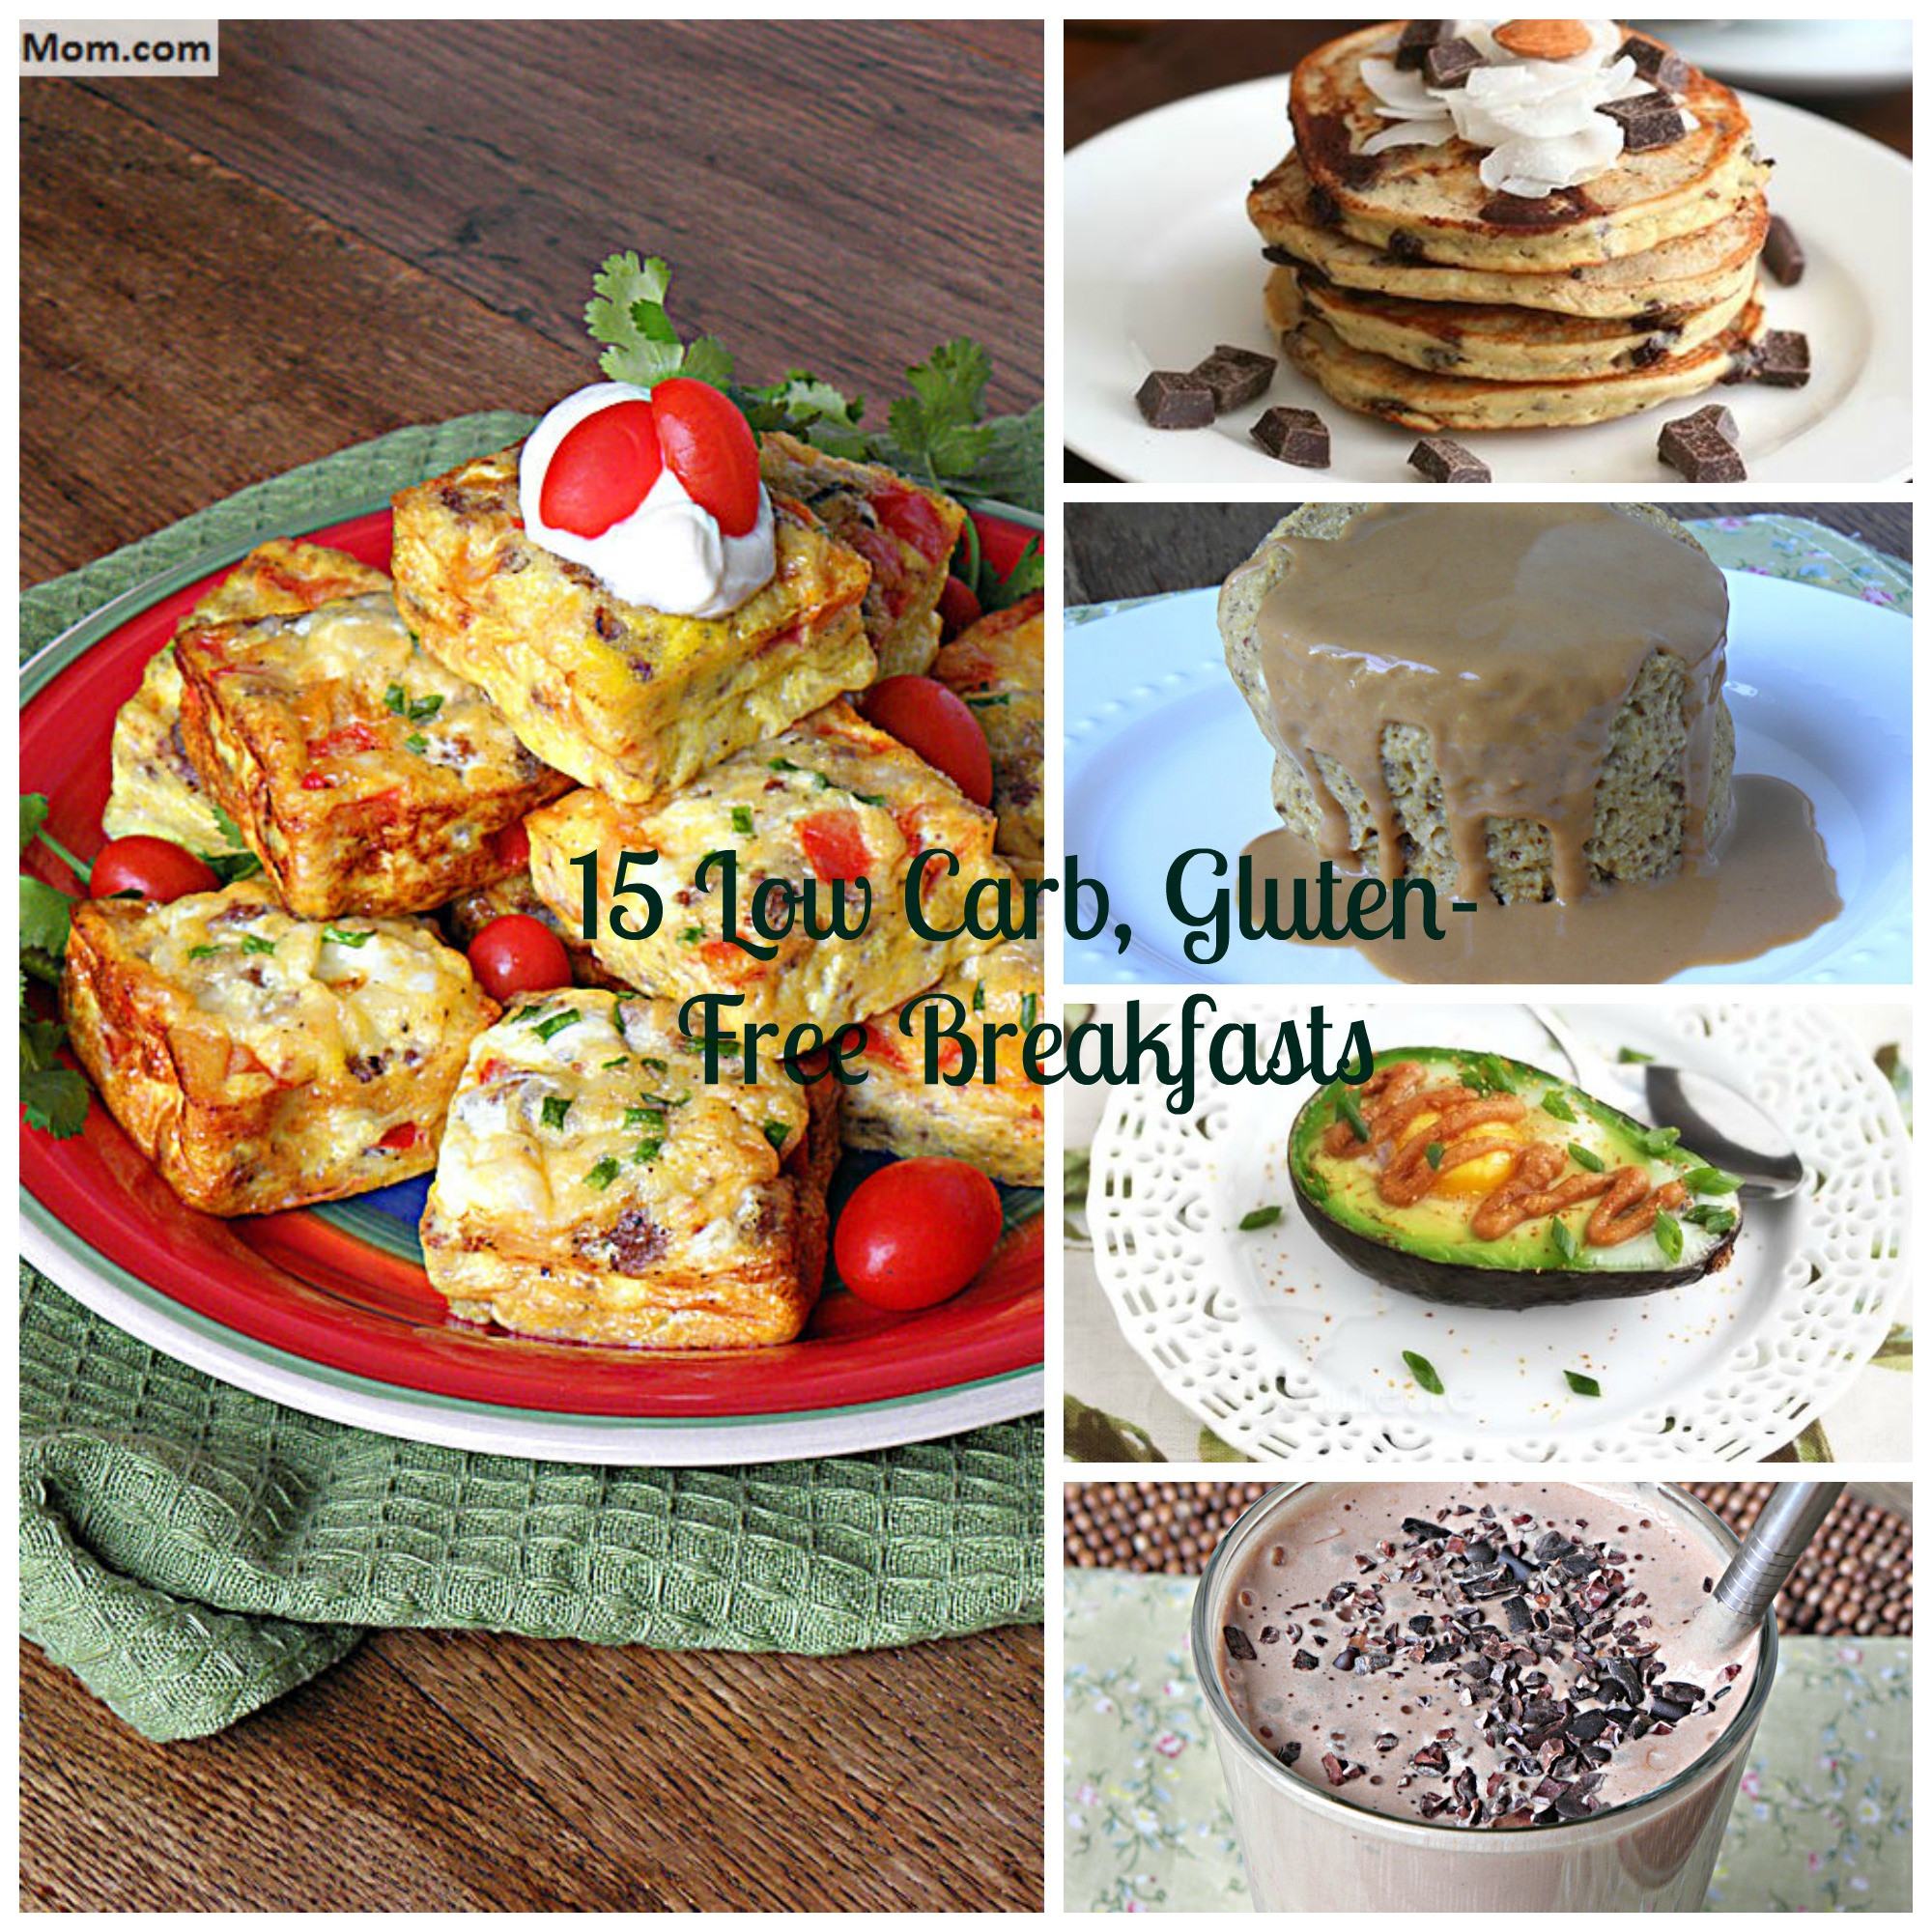 Diabetic Recipes For Breakfast  15 Gluten Free Low Carb & Diabetic Friendly Breakfast Recipes